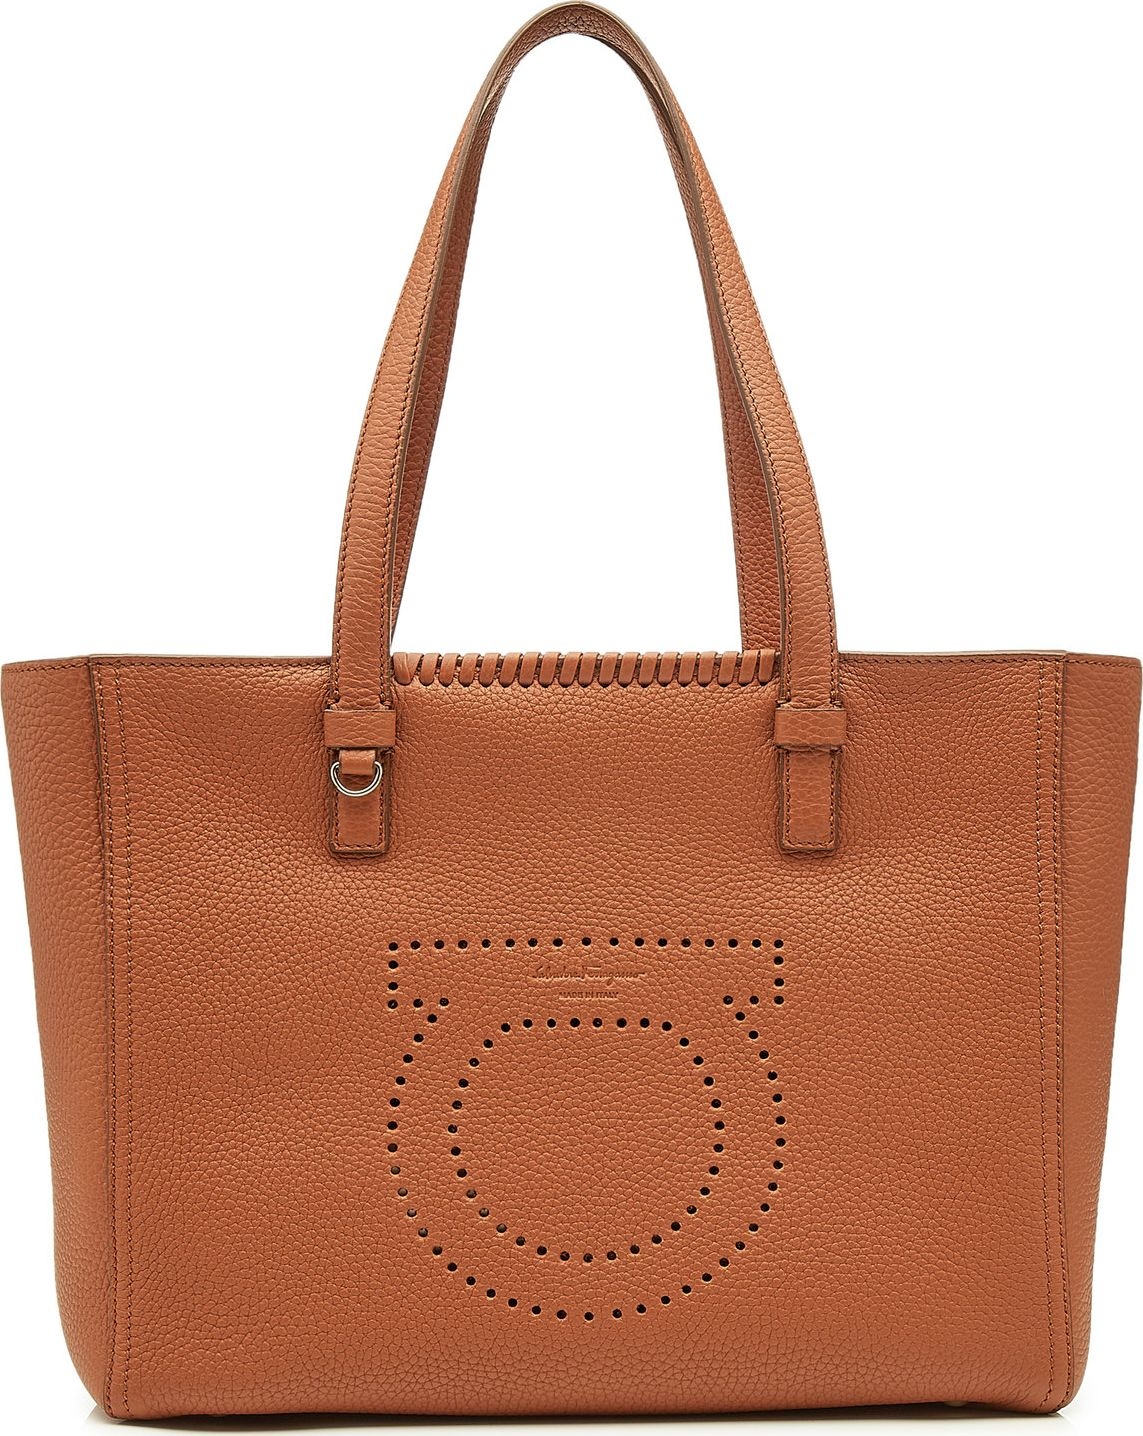 Salvatore Ferragamo - Leather Tote